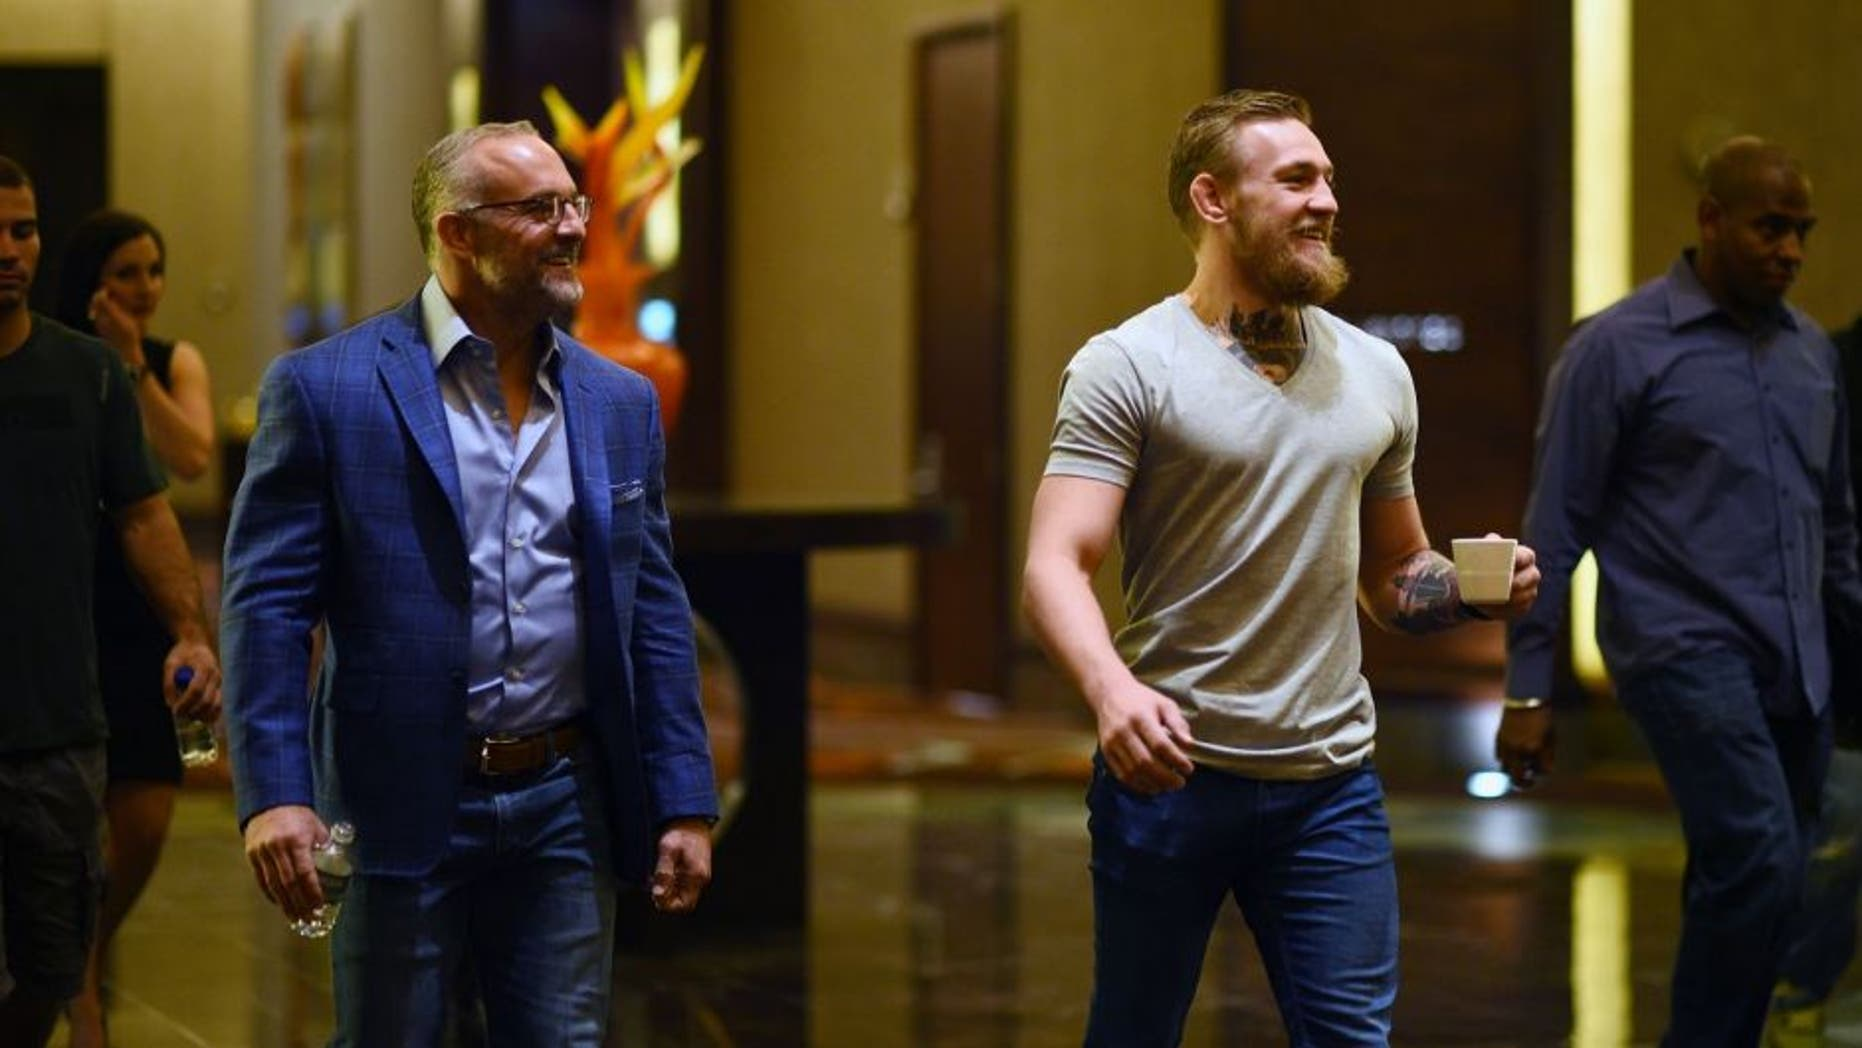 LAS VEGAS, NV - MARCH 23: UFC featherweight title challenger Conor McGregor of Ireland (R) walks with UFC CEO Lorenzo Fertitta during the UFC 189 World Championship Press Tour stop at the Red Rock Casino Resort on March 23, 2015 in Las Vegas, Nevada. (Photo by Jeff Bottari/Zuffa LLC/Zuffa LLC via Getty Images)